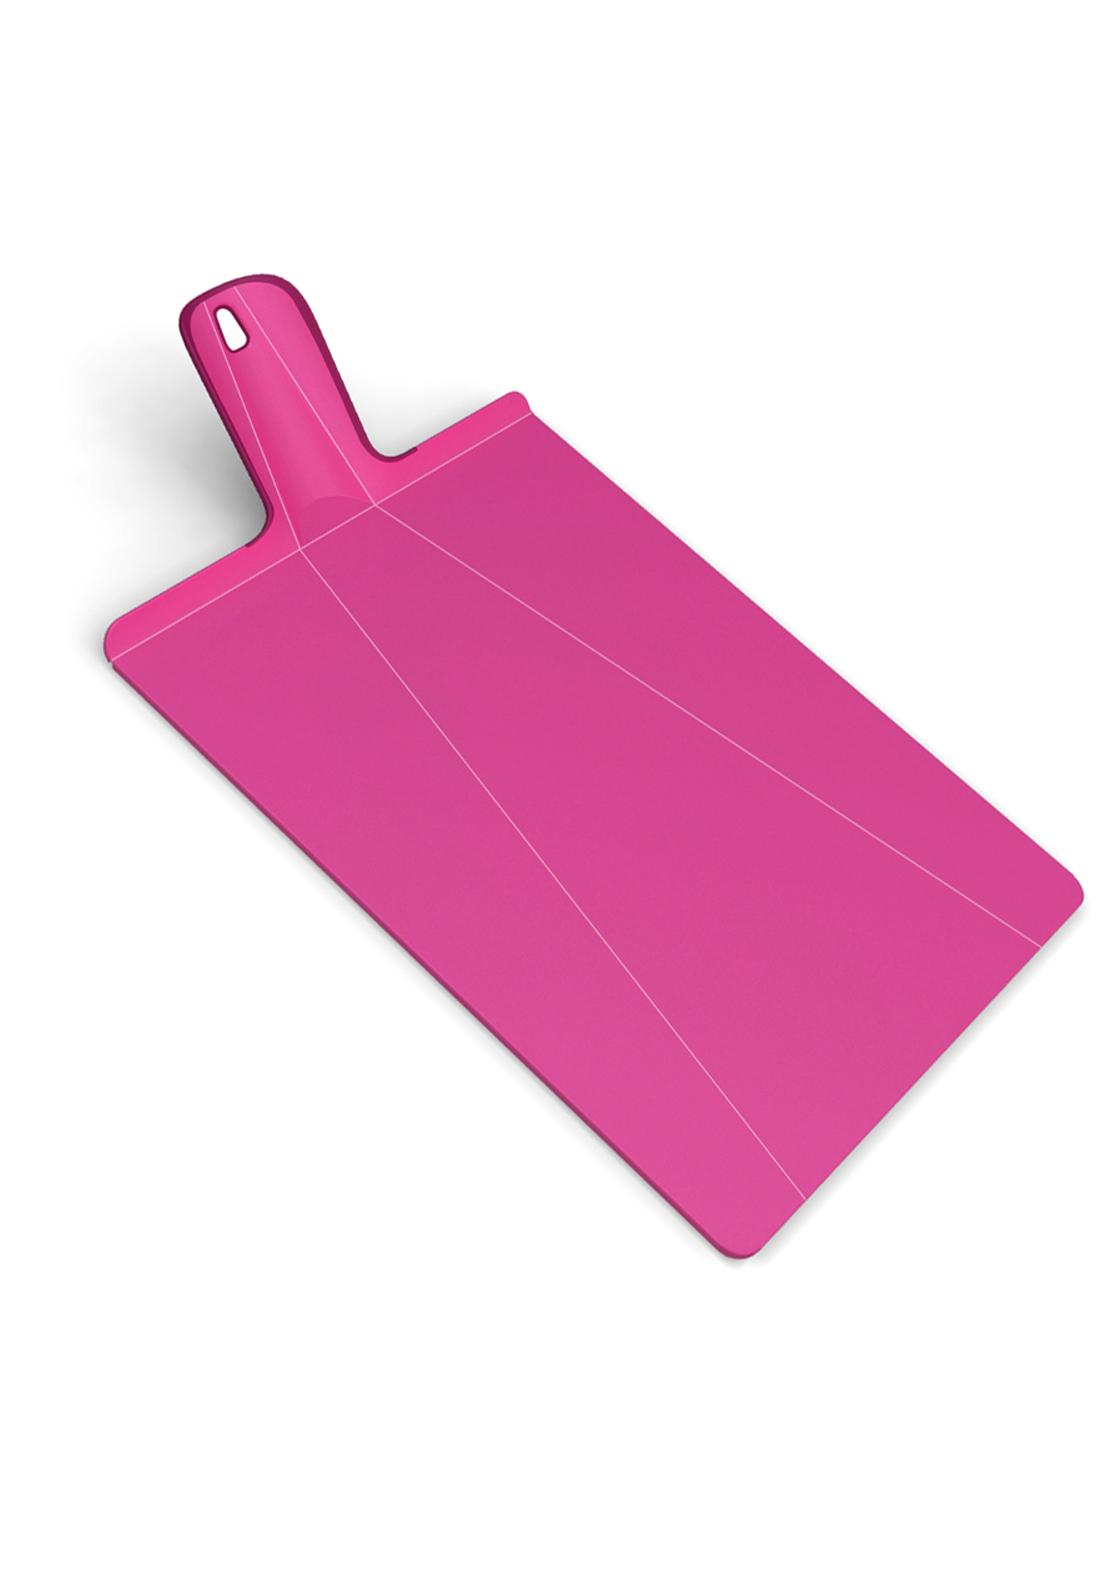 Joseph Joseph Chop2Pot Plus Large, Pink